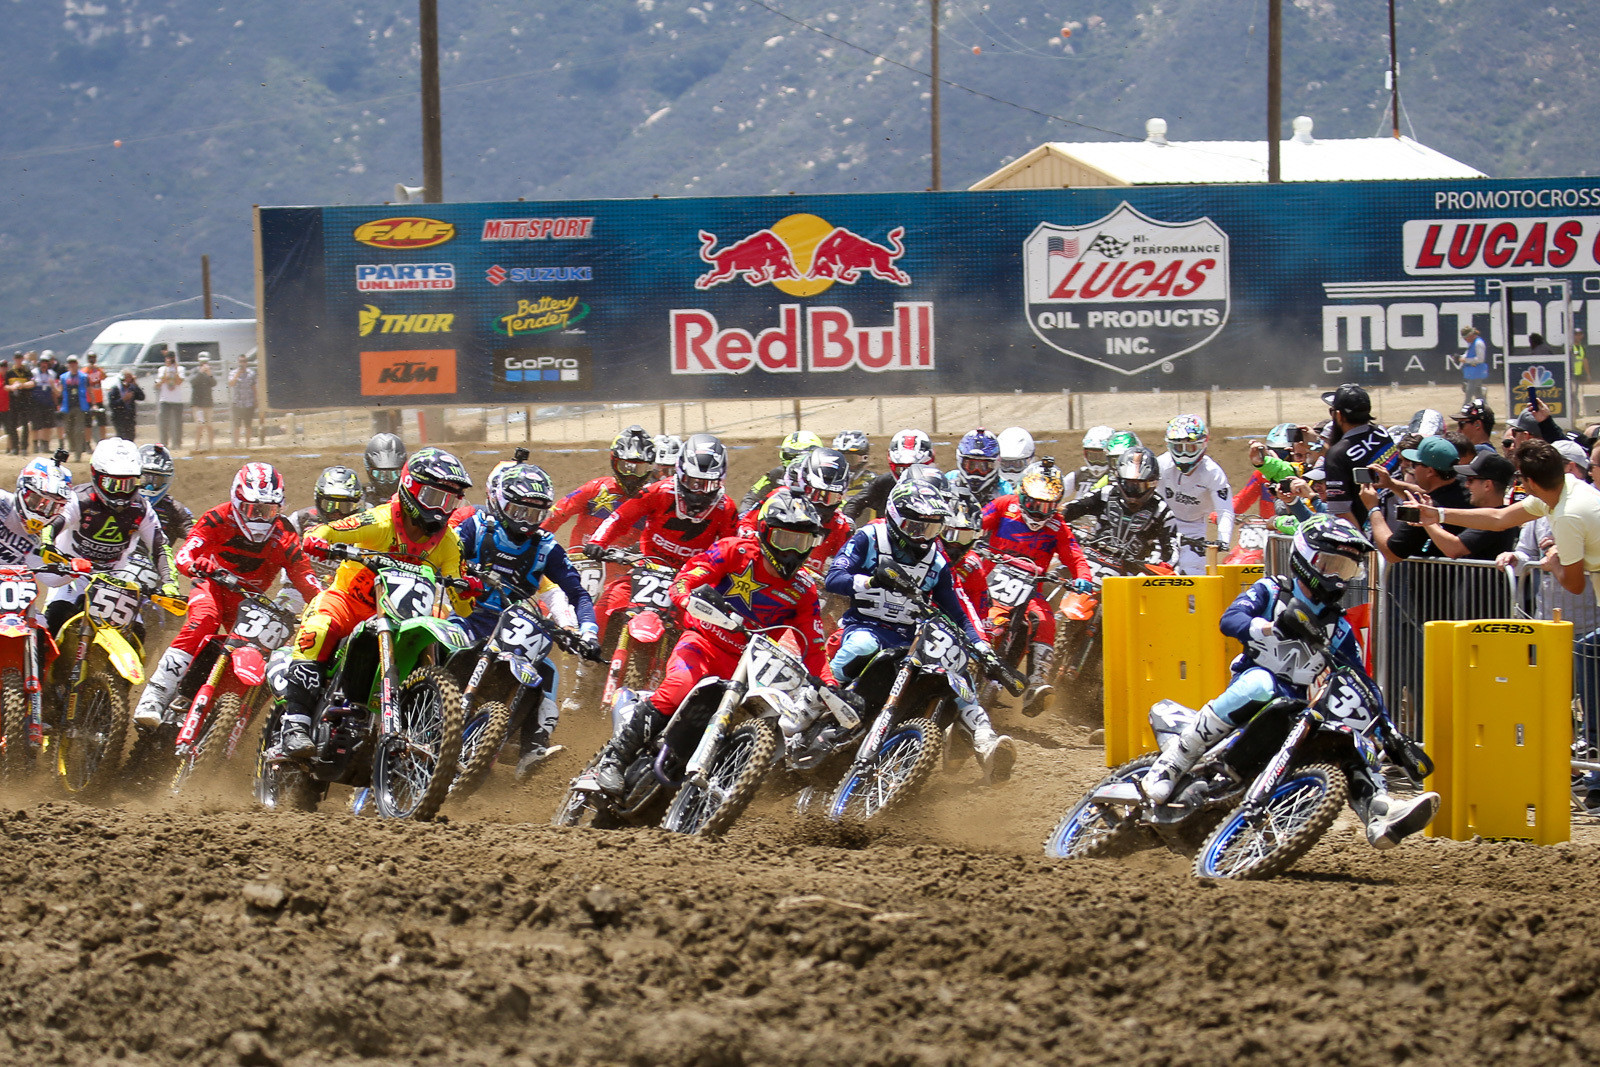 In the first moto, Justin Cooper came from the inside of the gate to grab the holeshot.